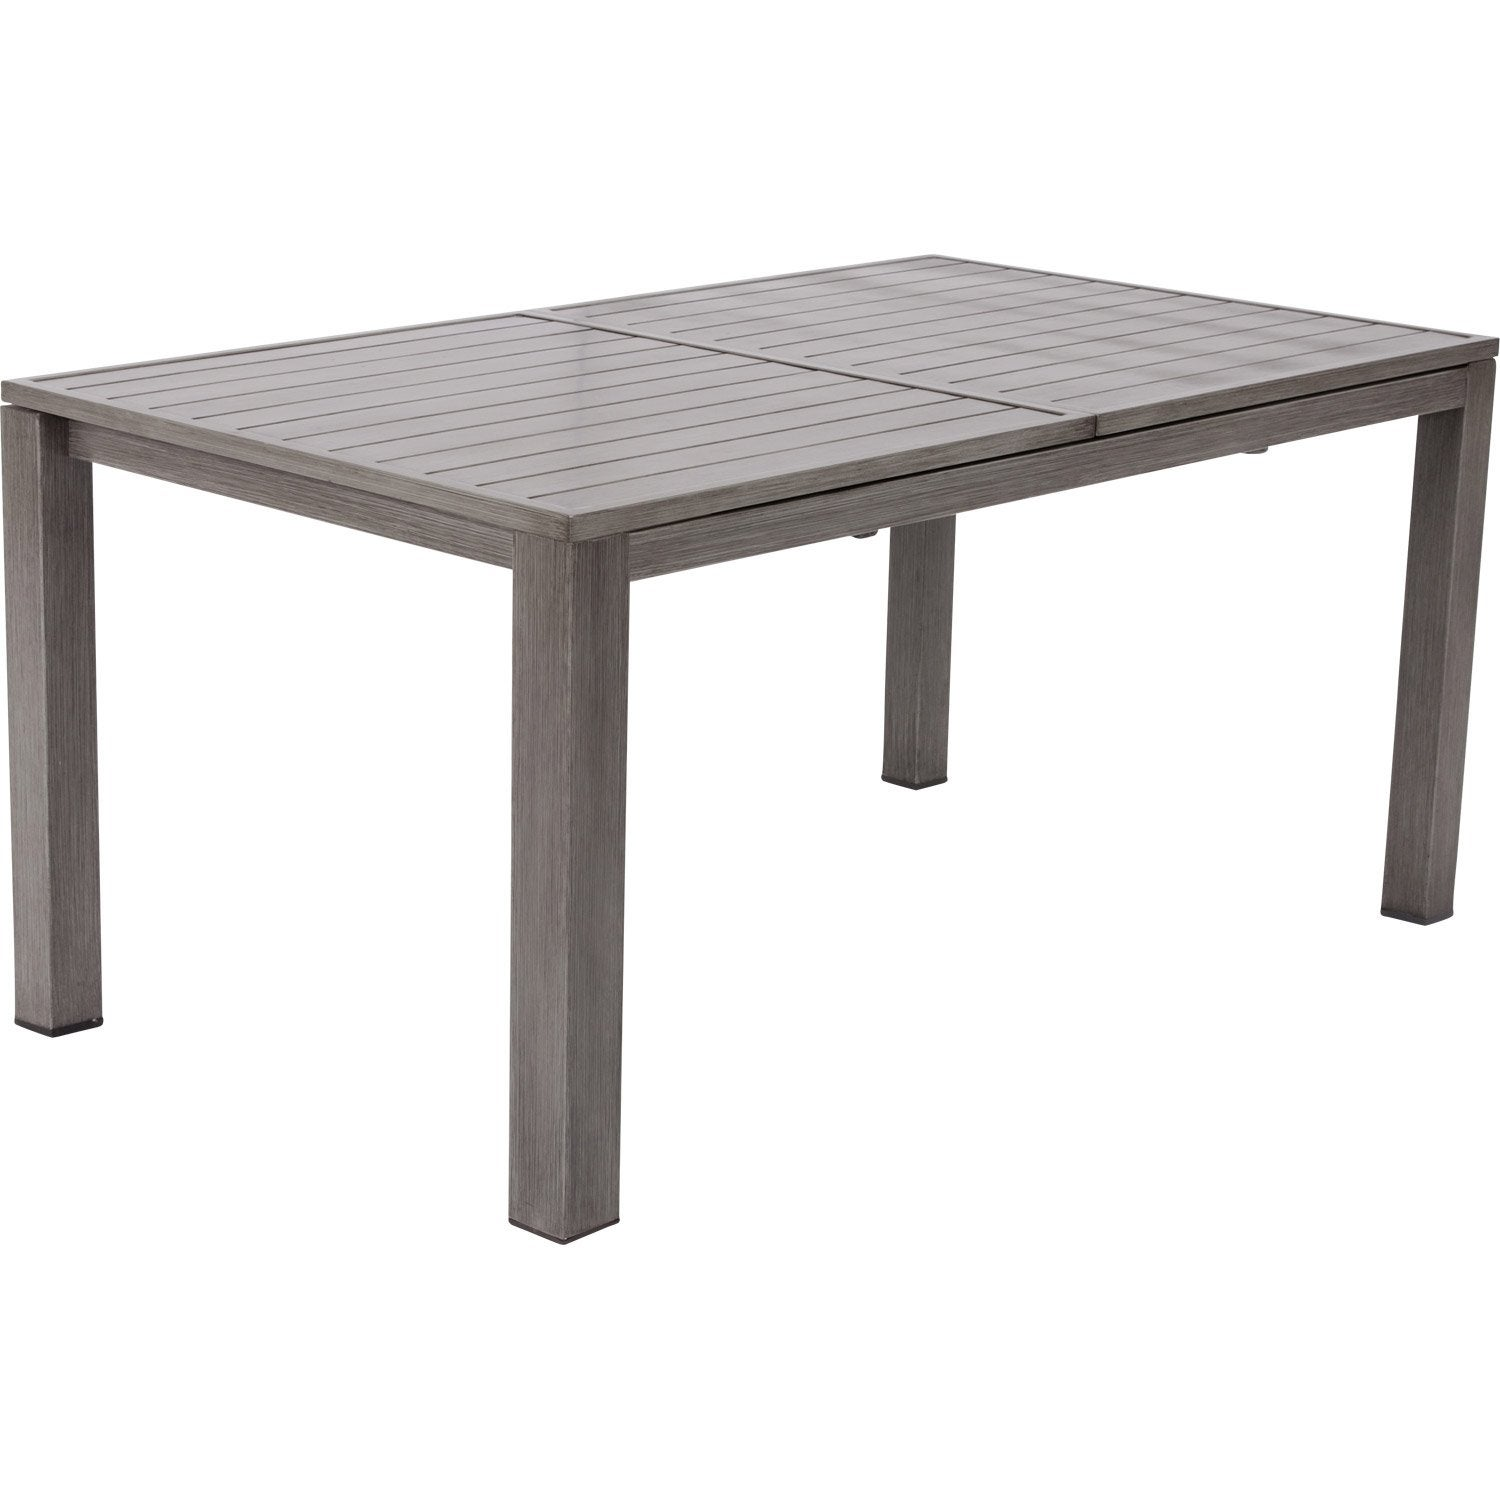 Table de jardin naterial antibes rectangulaire gris look for Table de jardin pliante plastique